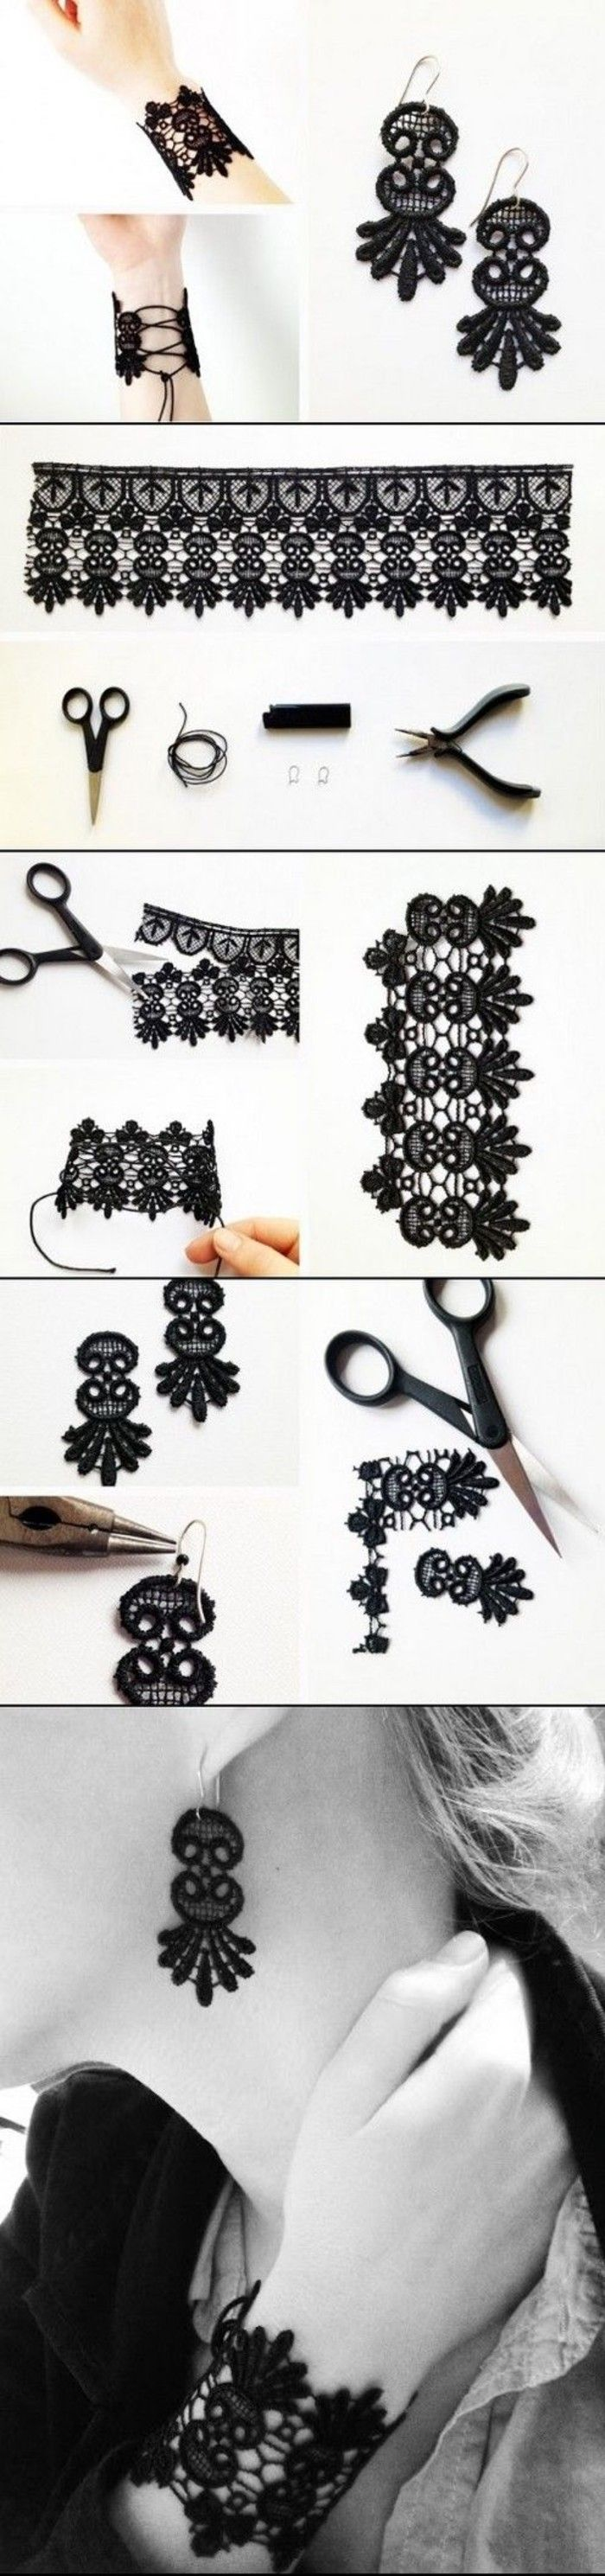 DIY Fashion Lace Jewelry